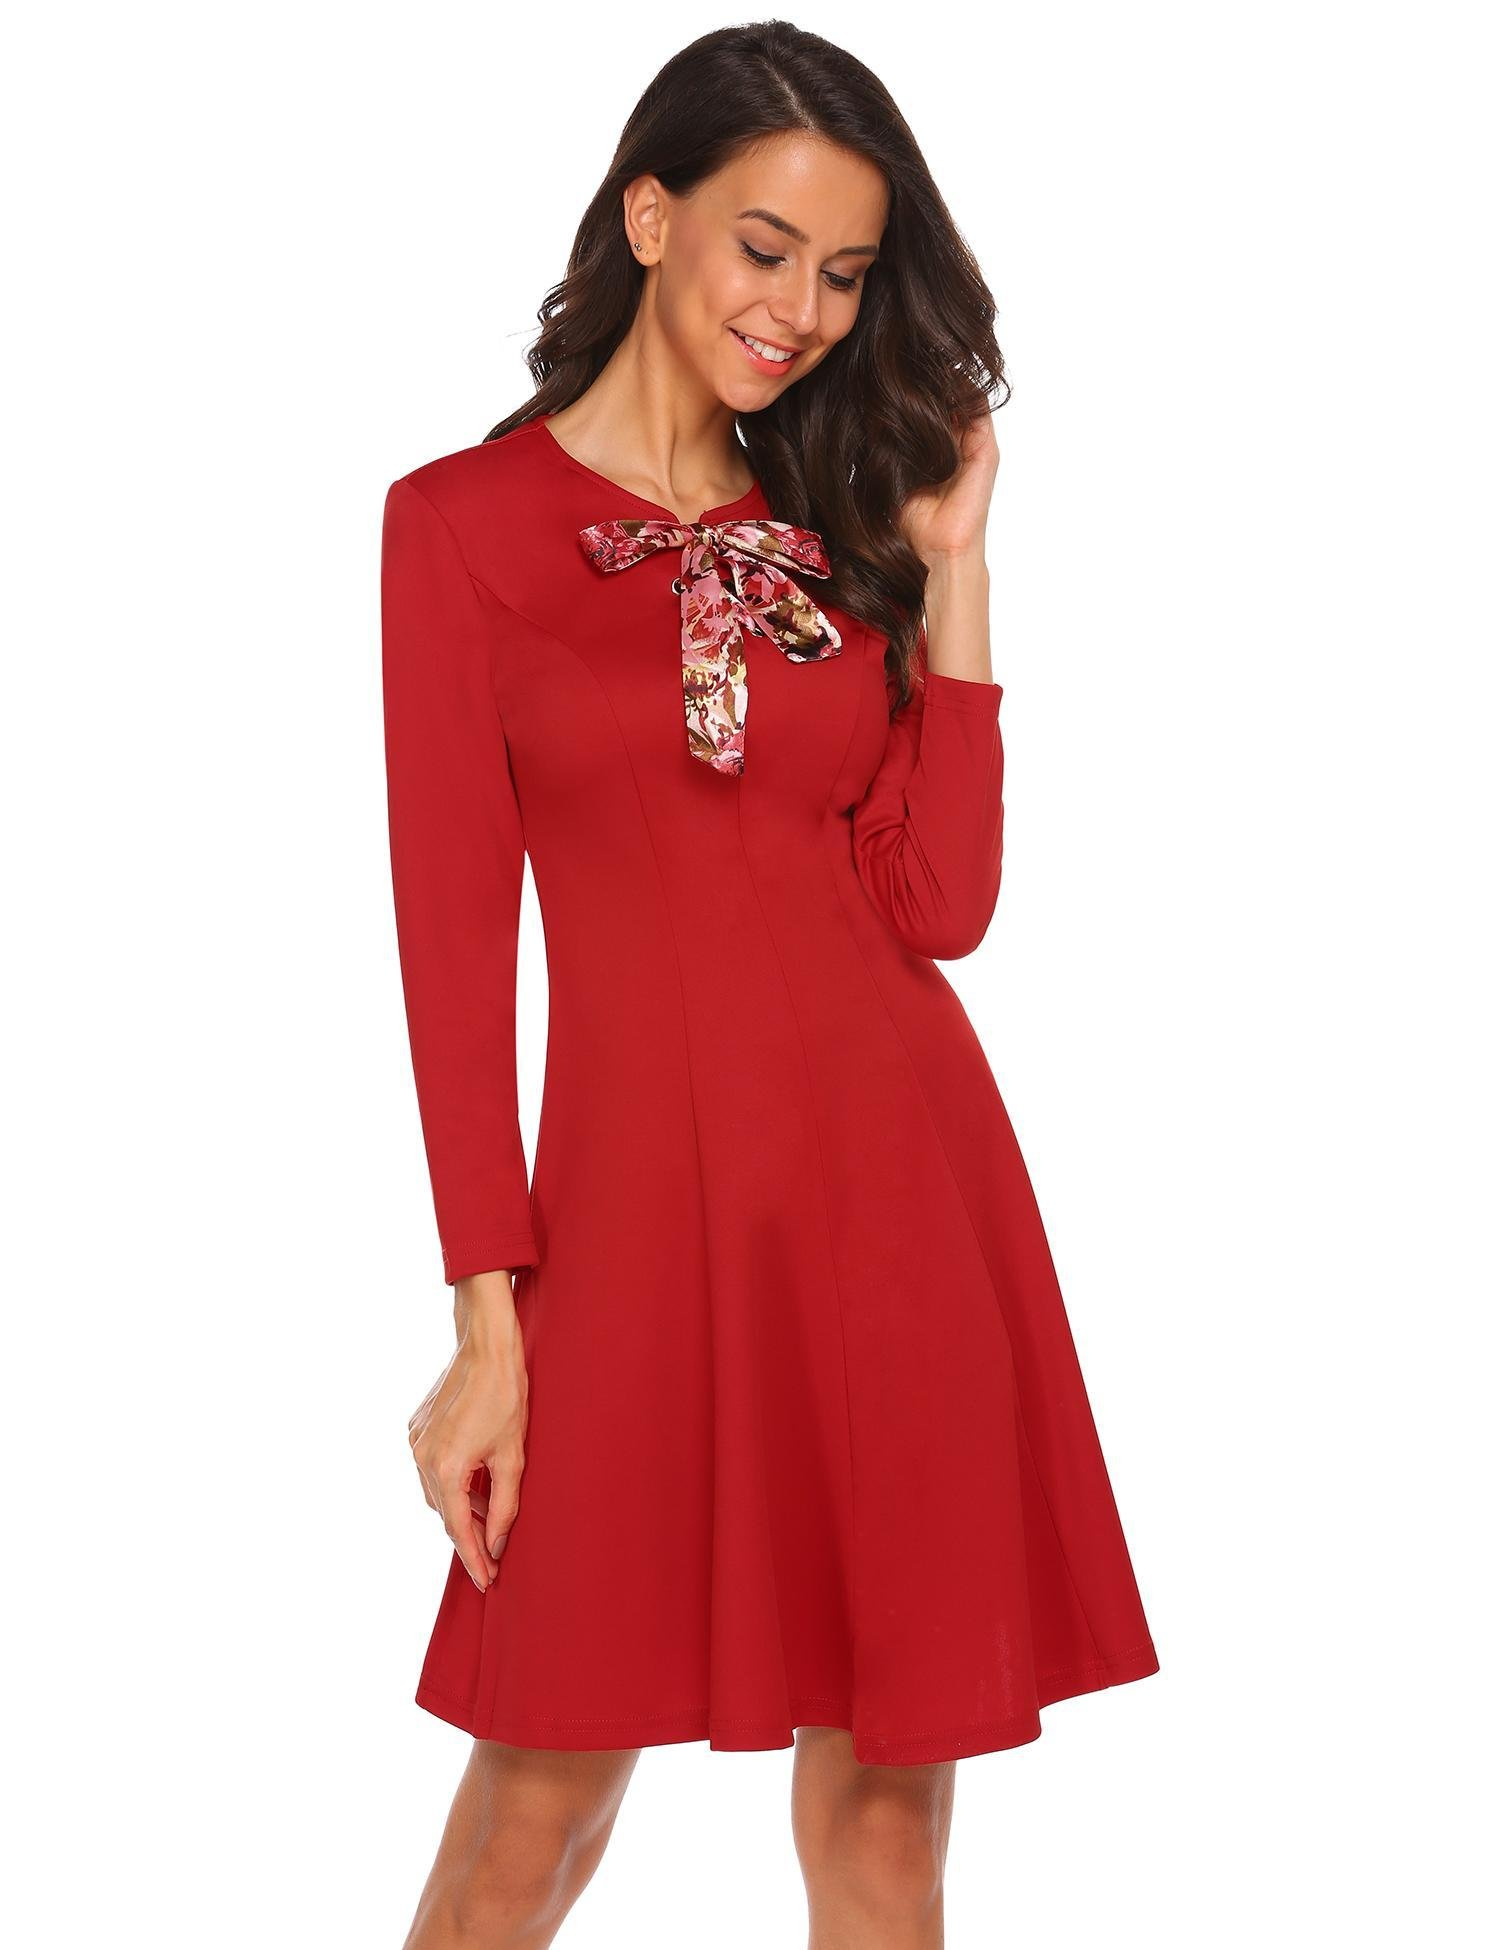 d856f78f6462 Misakia Women Long Sleeve Casual Scoop Neck Fit and Flare Dress with Bow  Tie Neck,